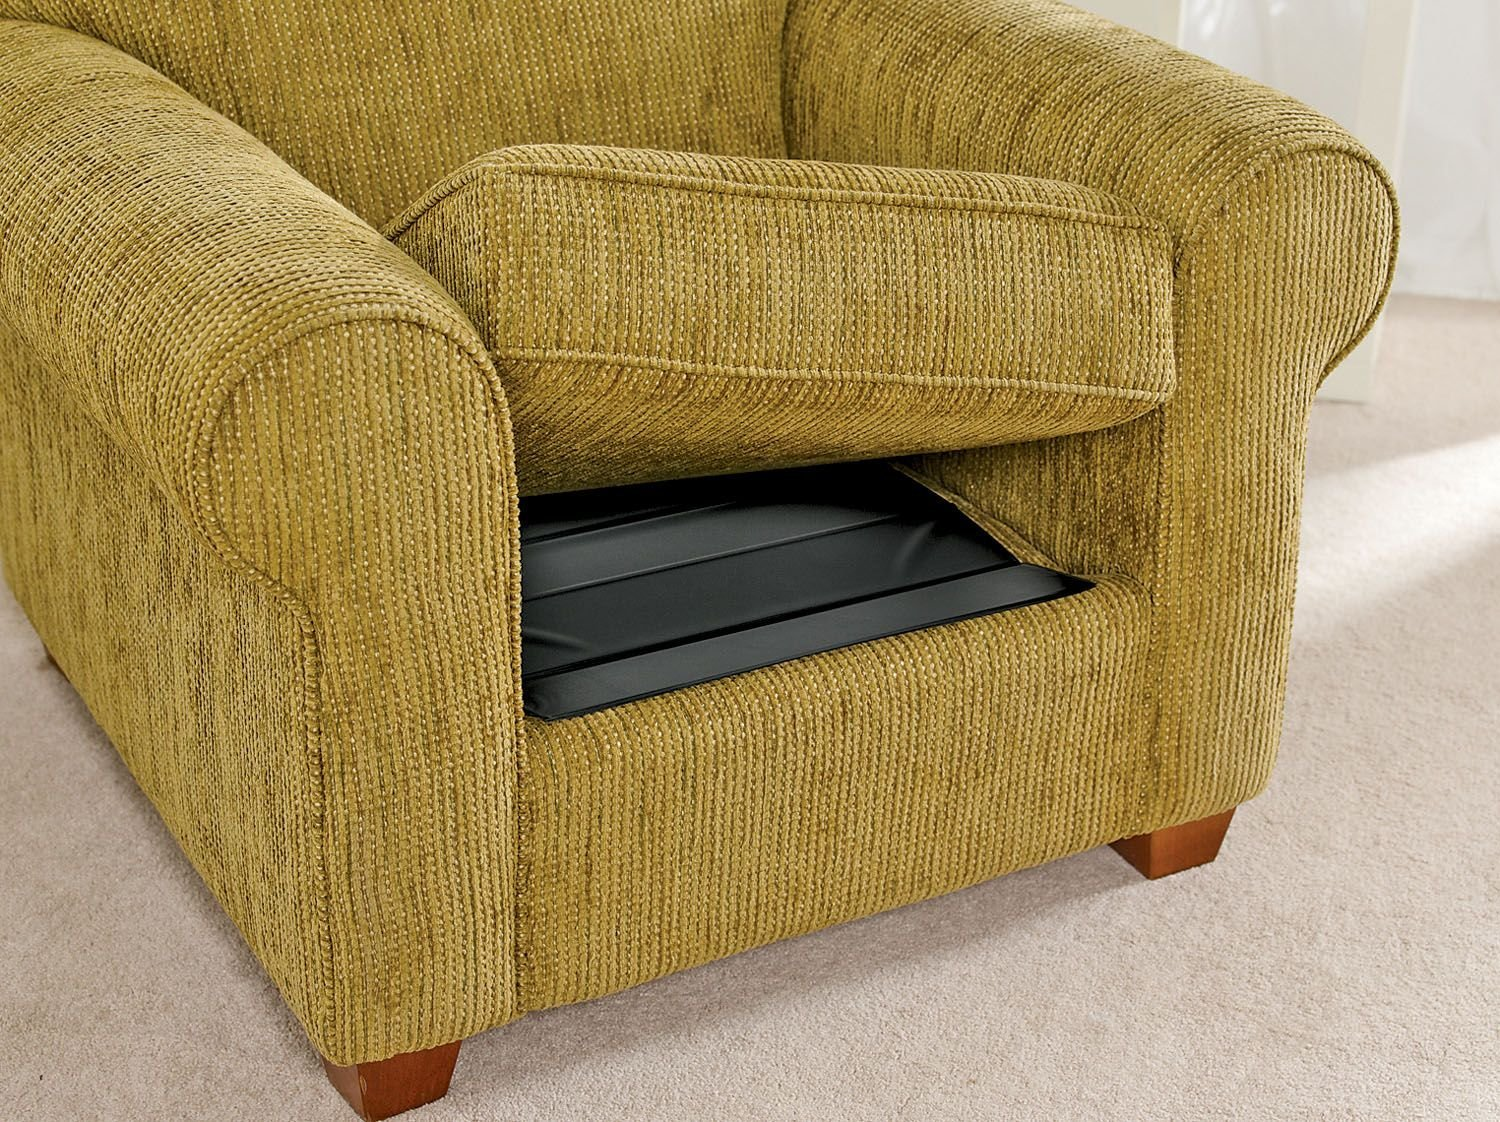 Sagging Sofa Cushion Support | Seat Saver